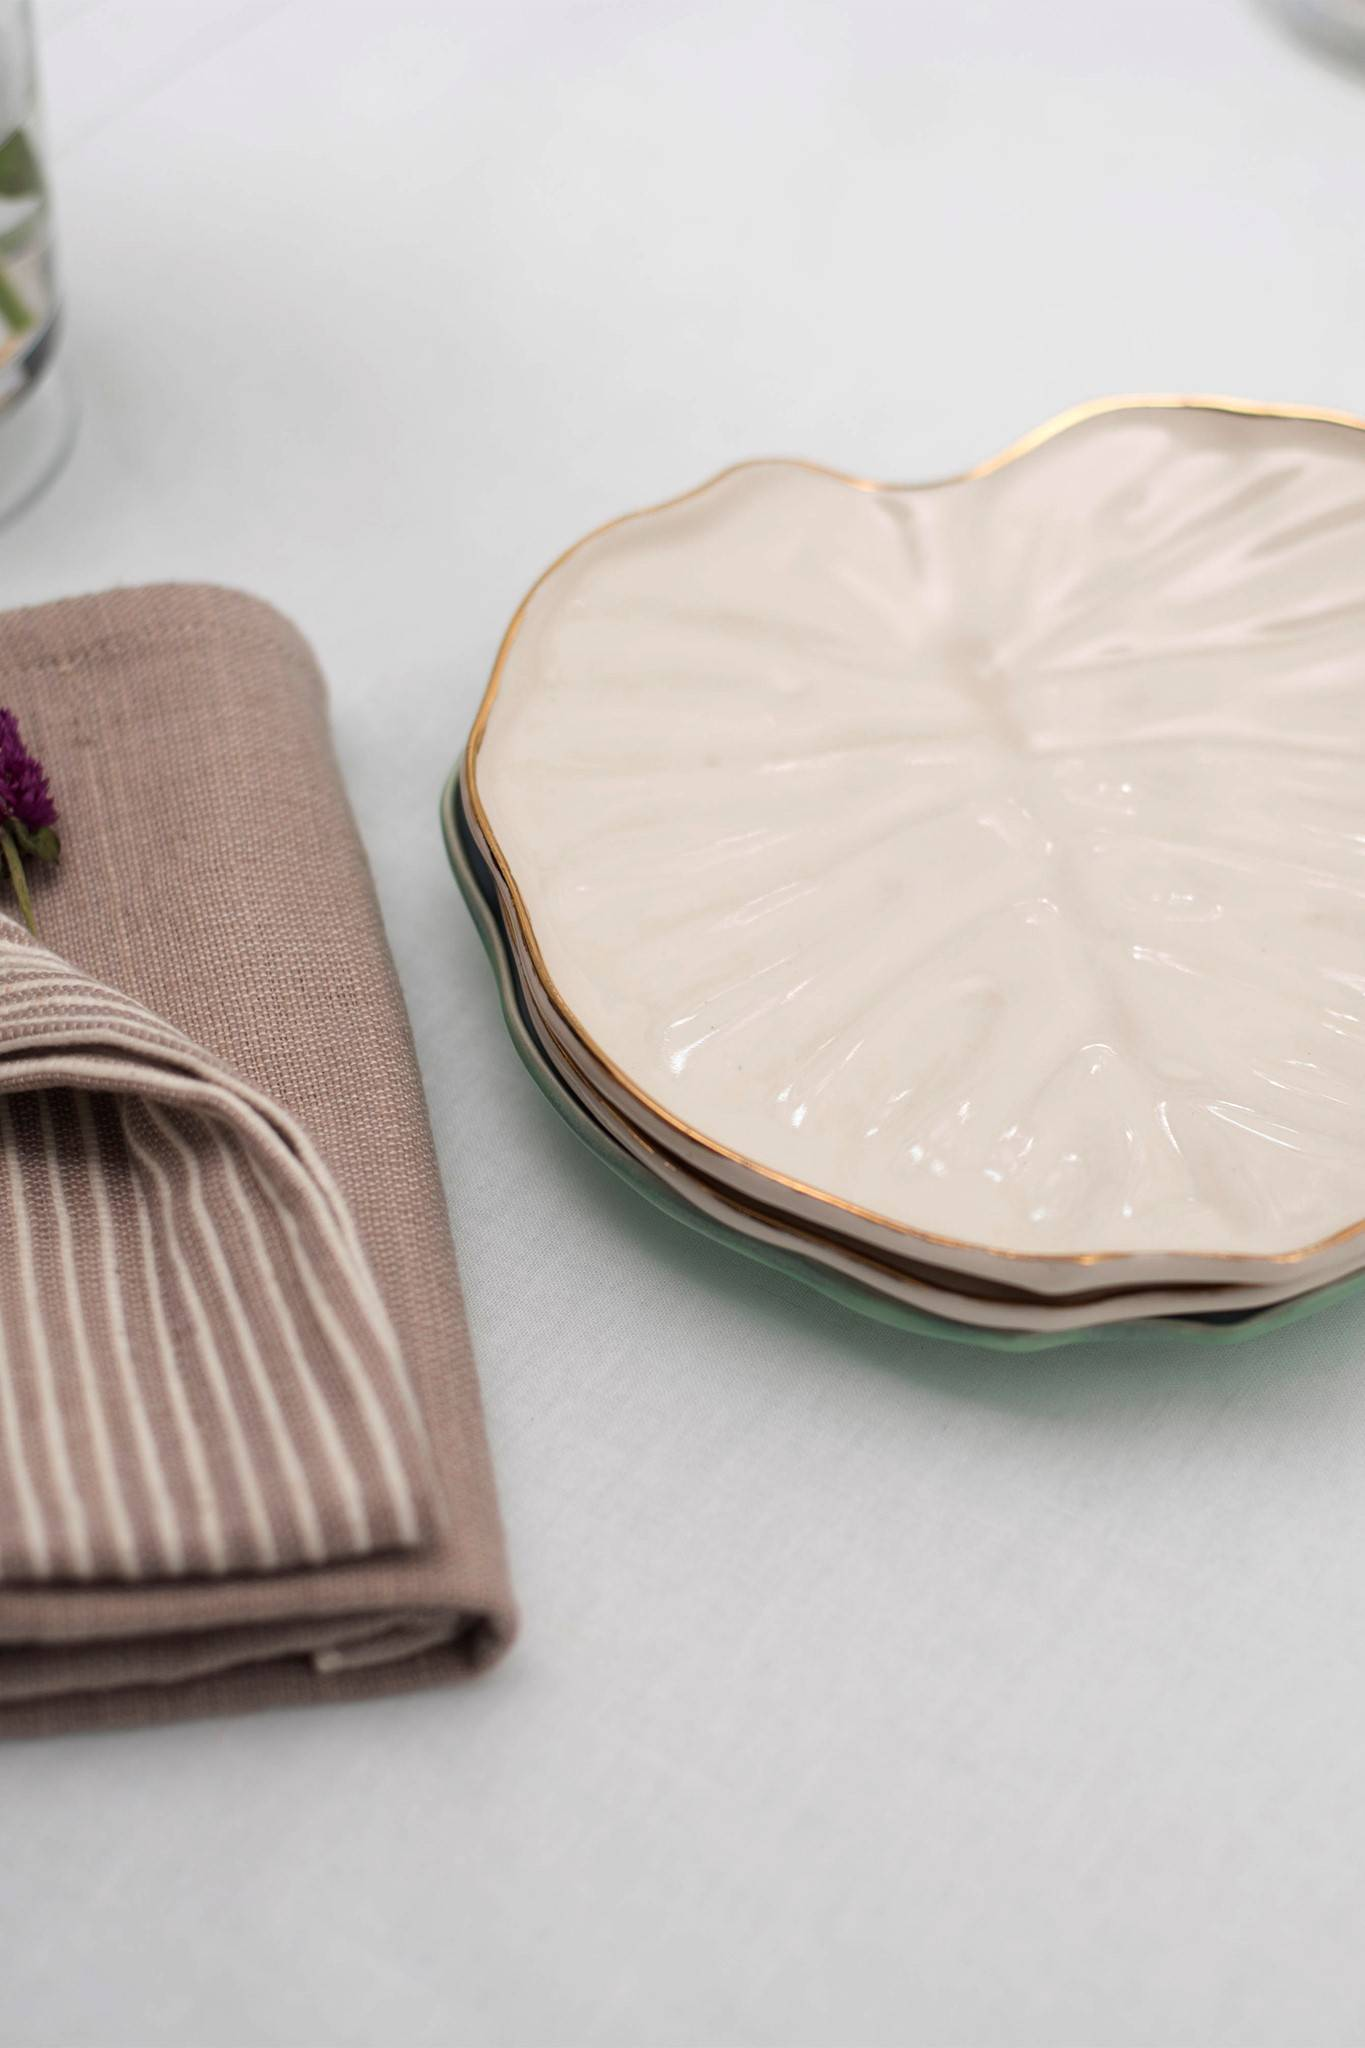 PHILODENDRON SALAD PLATE 2 SET - WHITE GOLD RIM $ 95